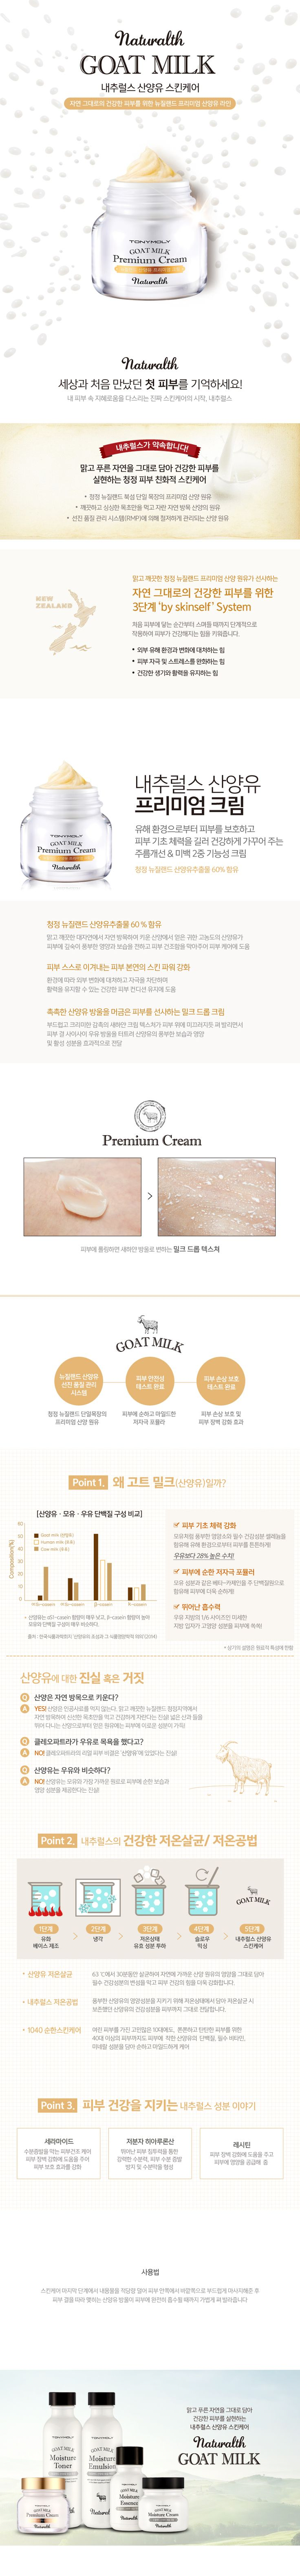 Tony Moly Naturalth Goal Milk Premium Cream | The Cutest Makeup